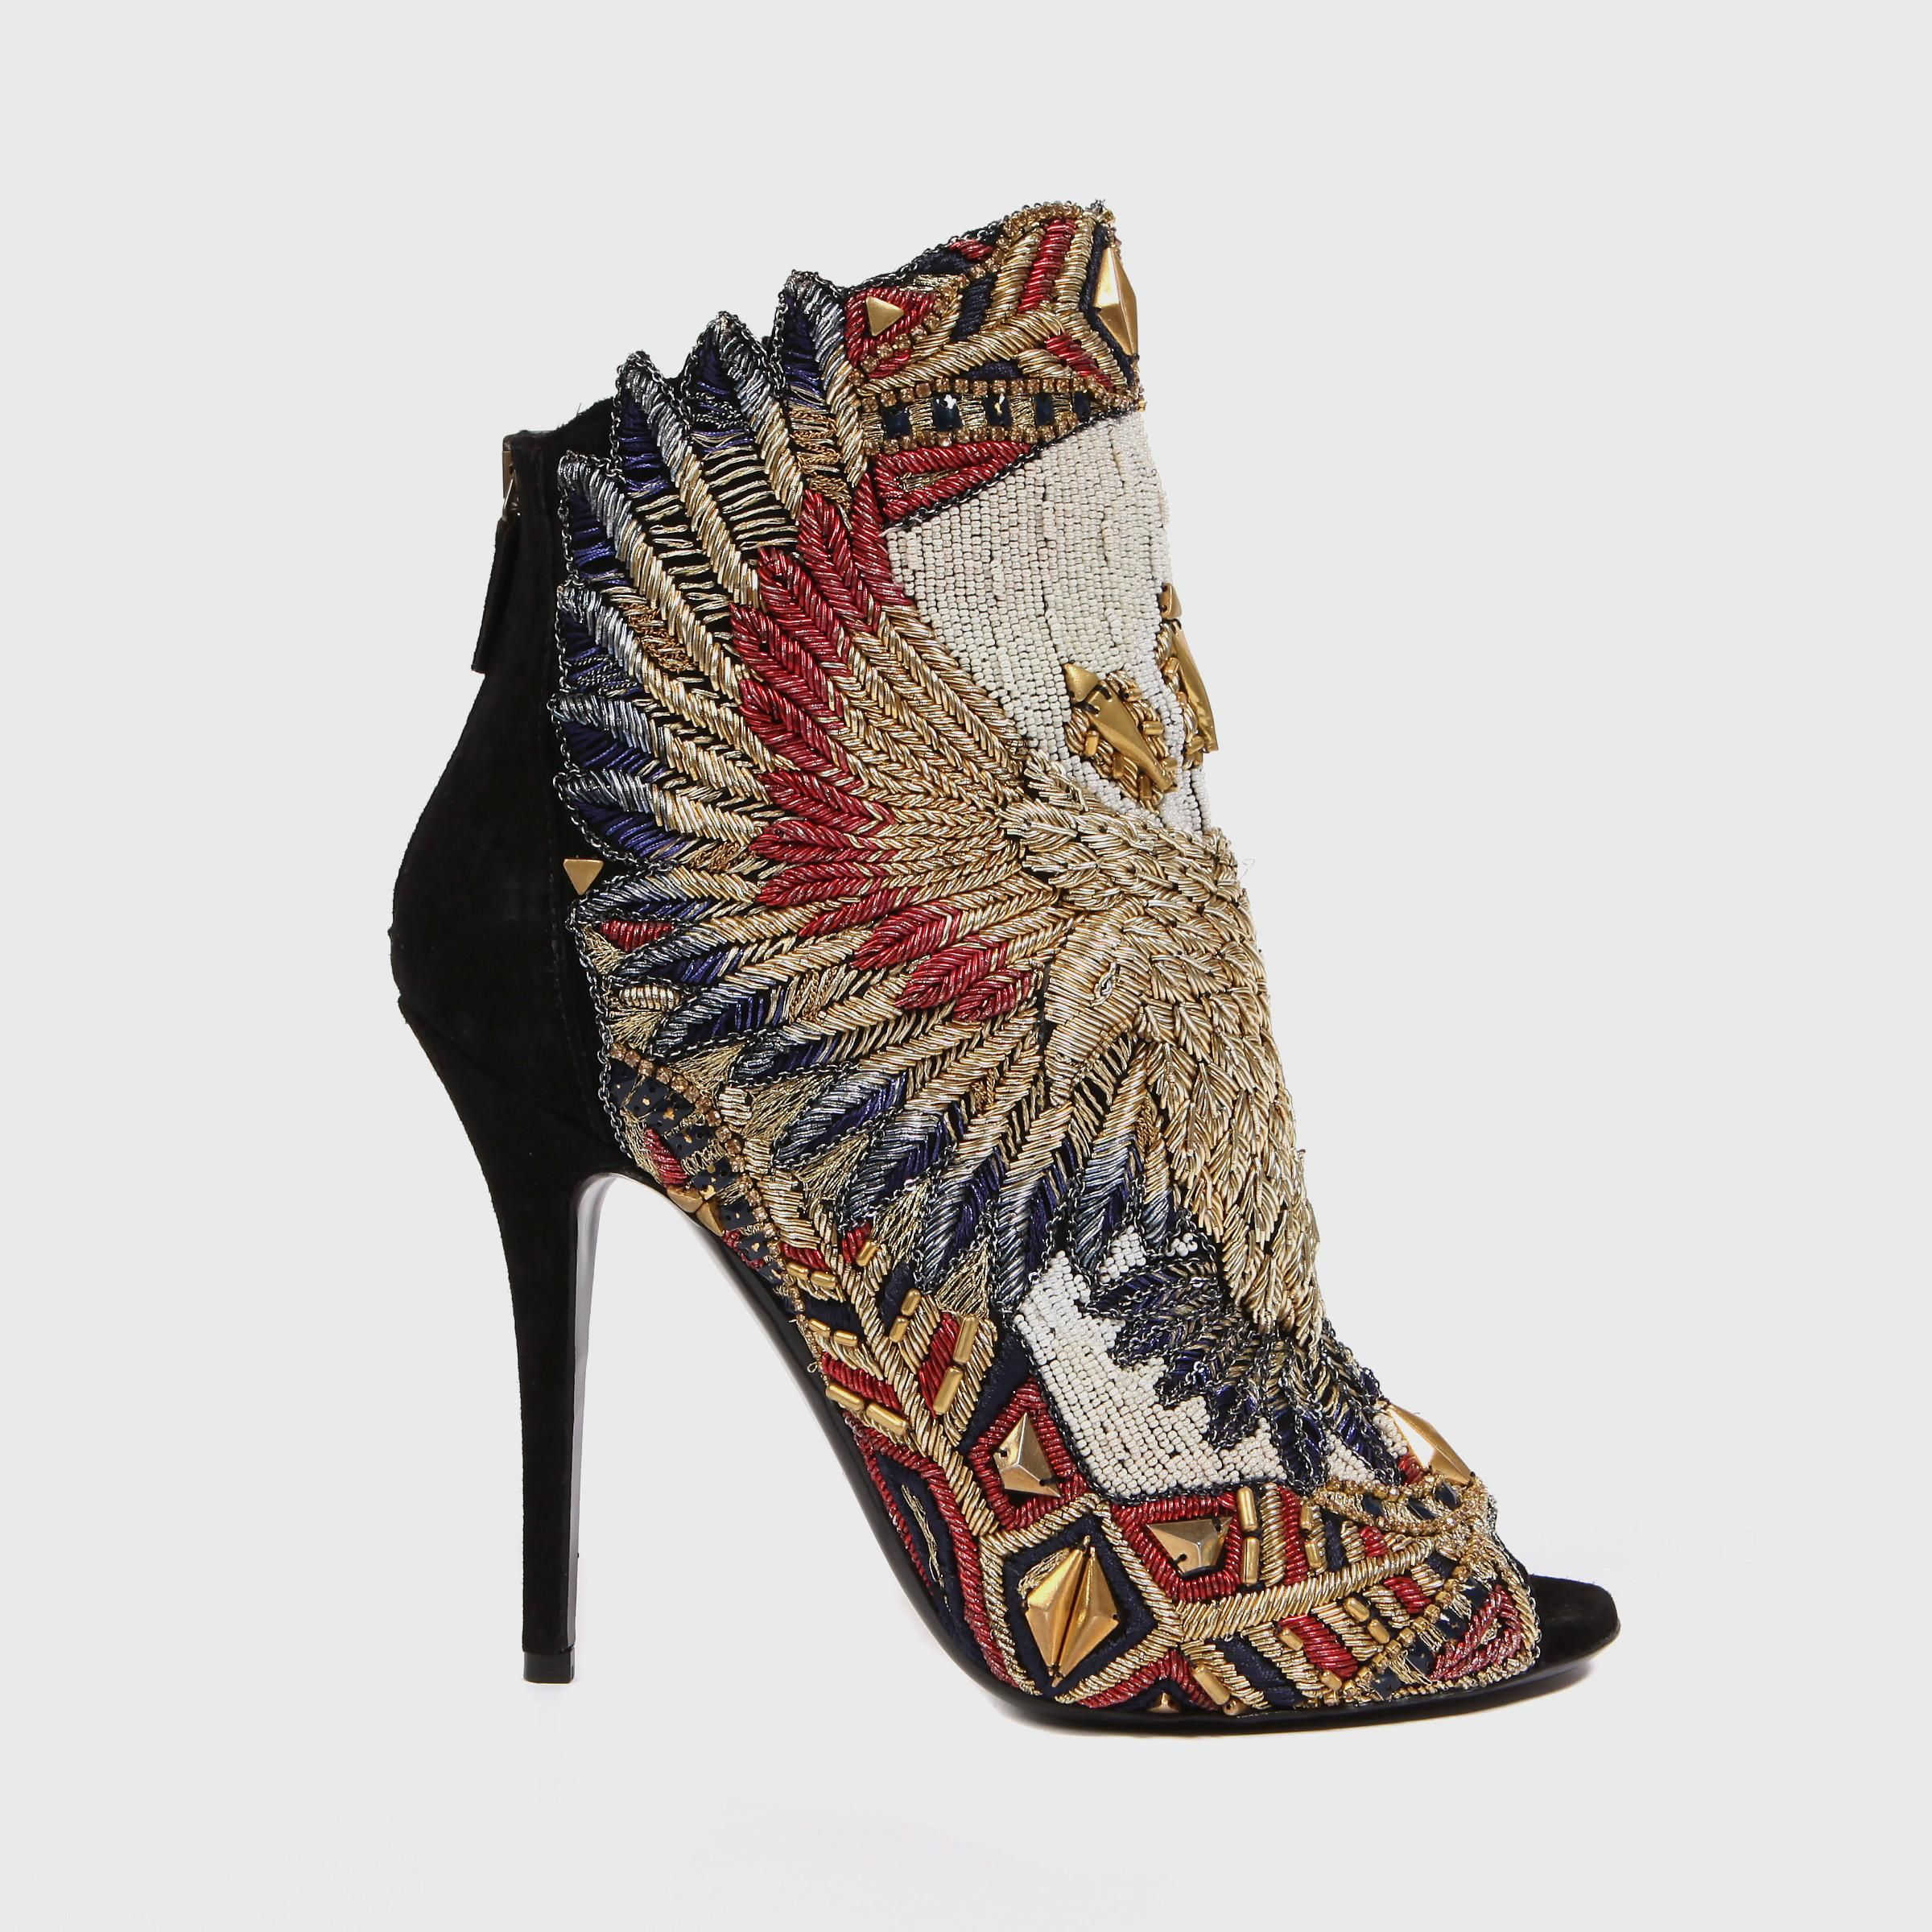 Balmain suede bootie with eagle embroidery- too awesome for words.